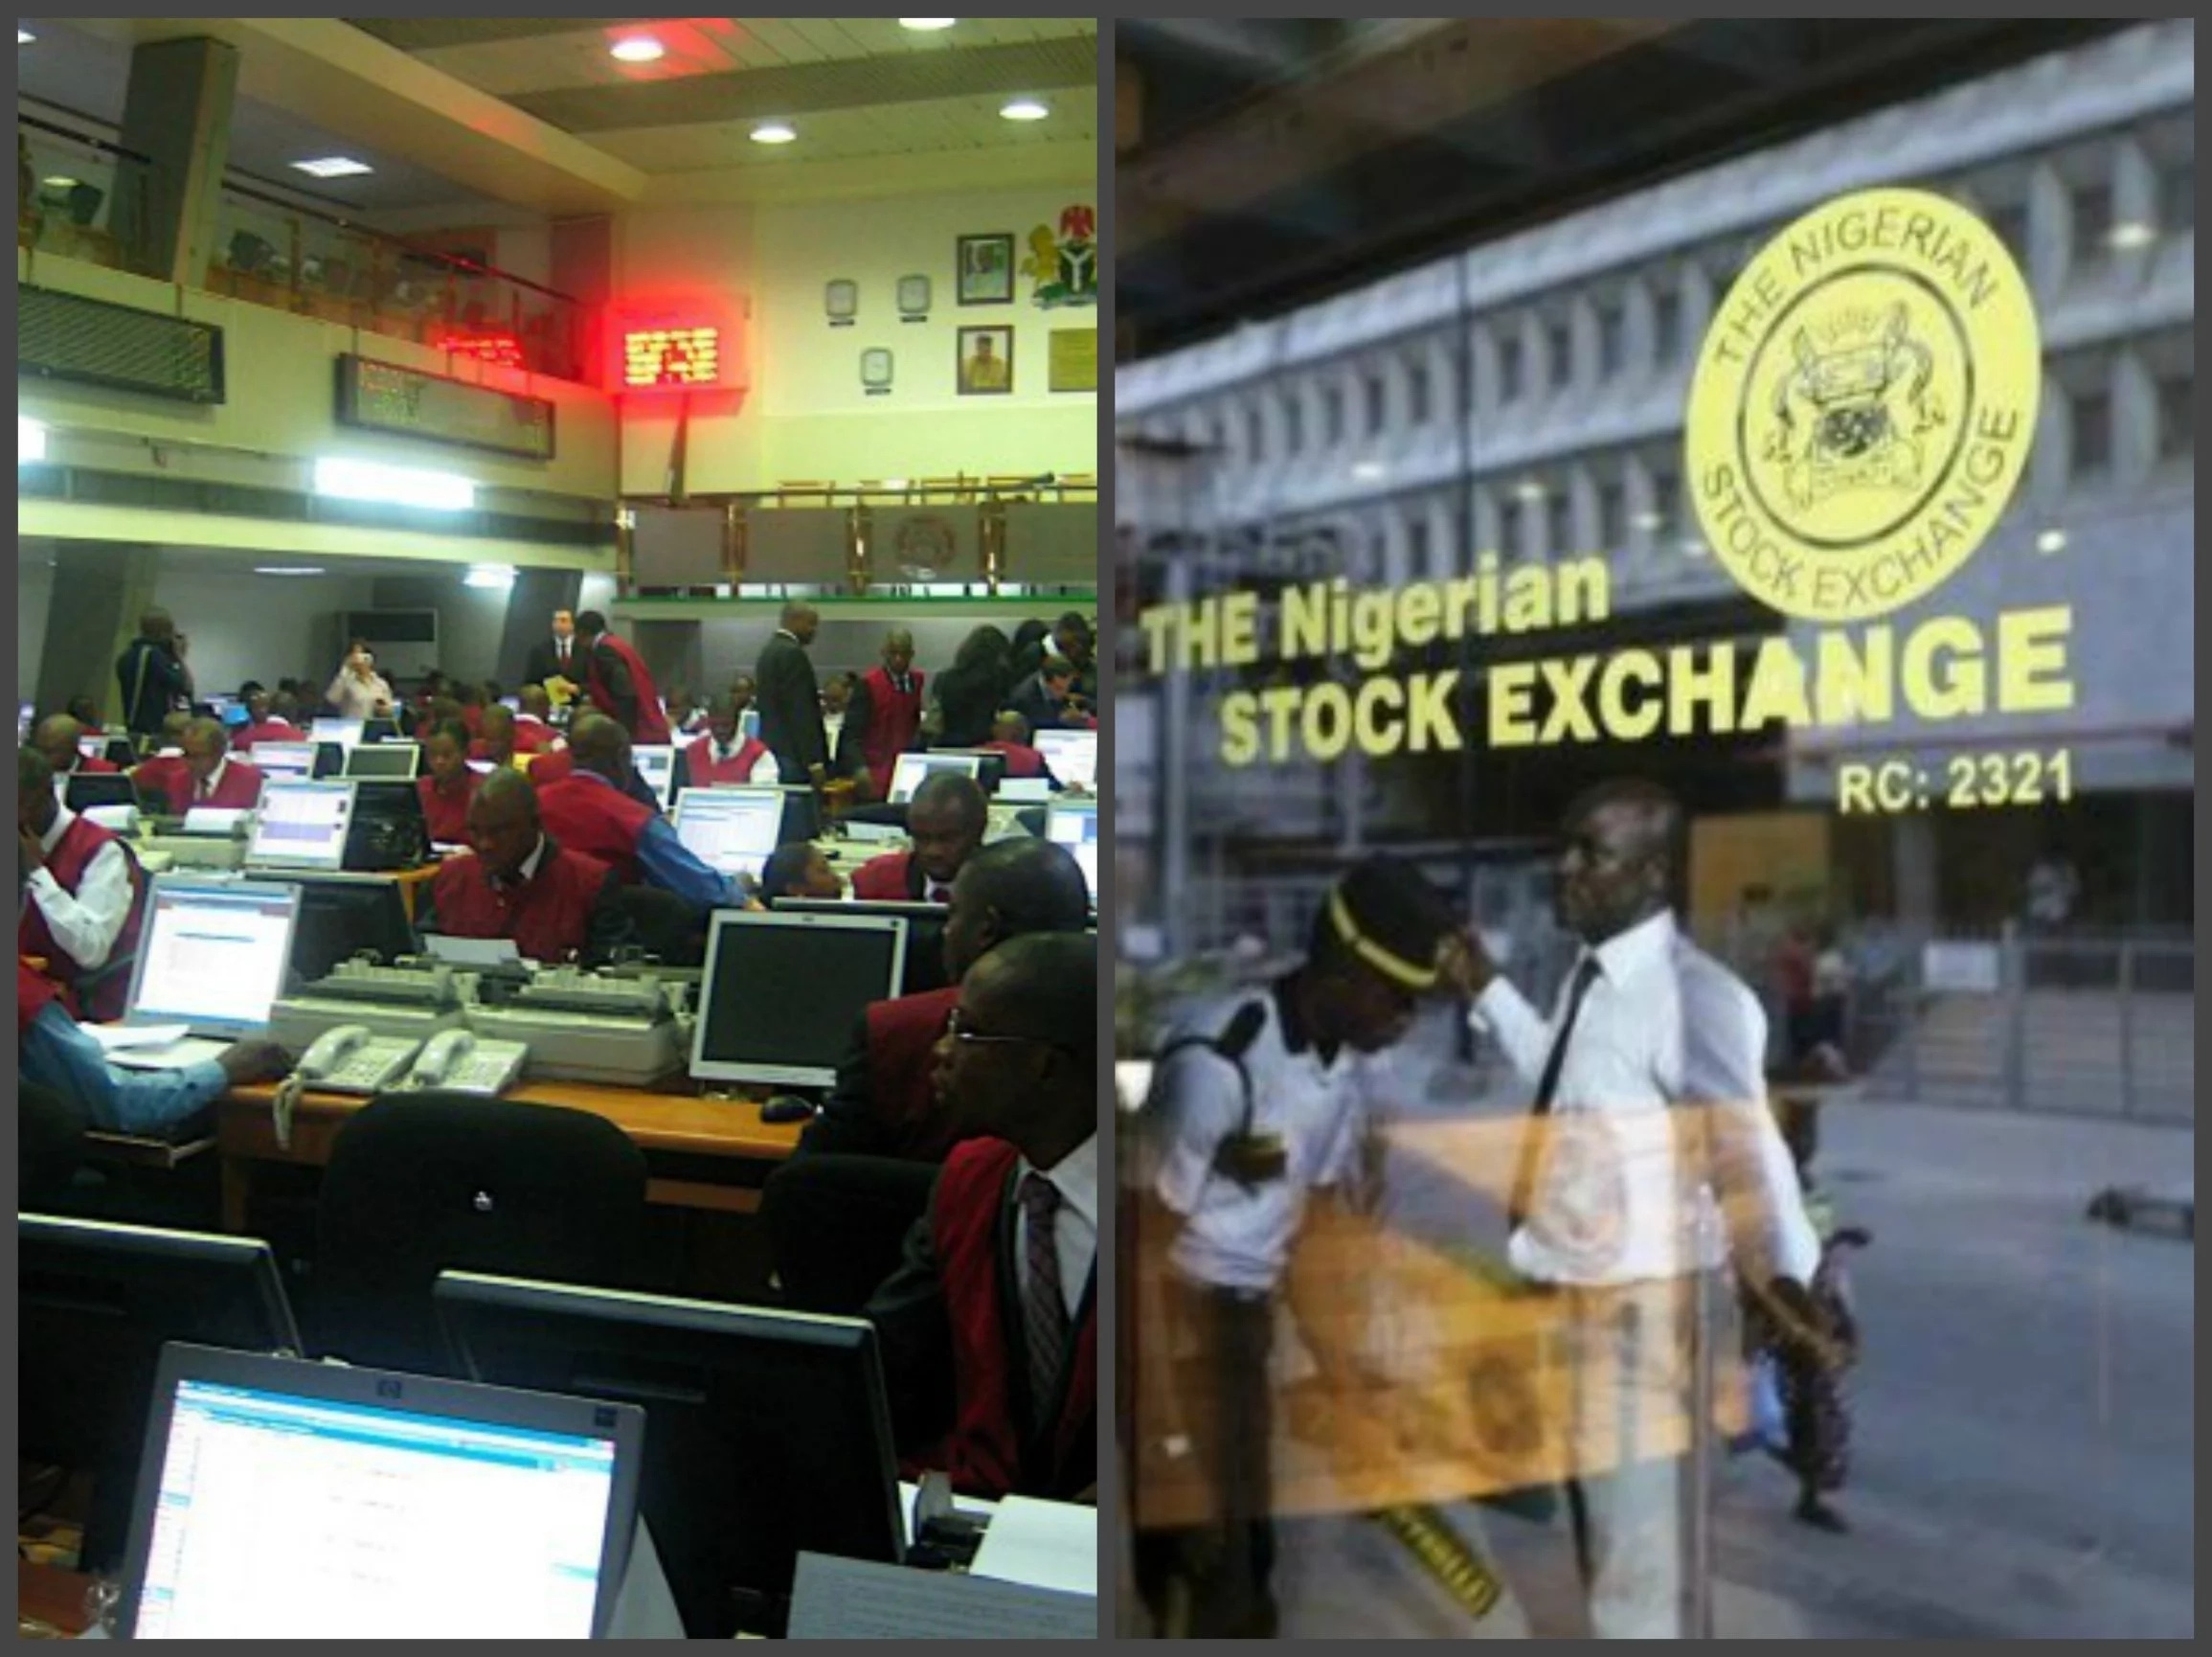 Fbn Holdings Plc On Monday Declared Profit After Tax Of N73.67 Billion In Its Audited Result For The Financial Year Ended Dec. 31, 2019. The Result, Released By The Nigerian Stock Exchange (nse), Sh